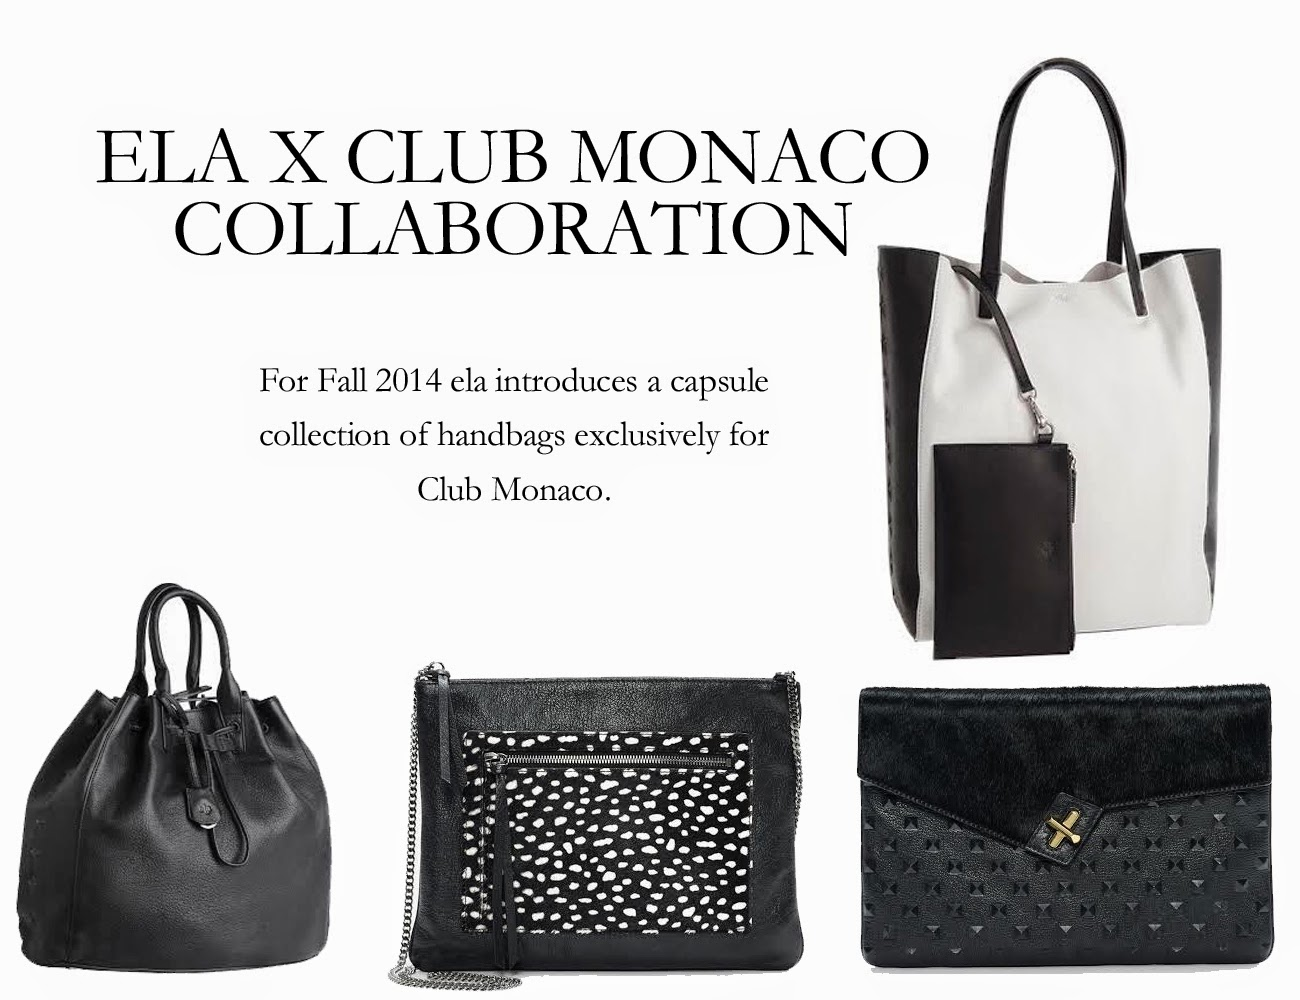 For Fall 2014 ela introduces a capsule collection of handbags exclusively for Club Monaco.